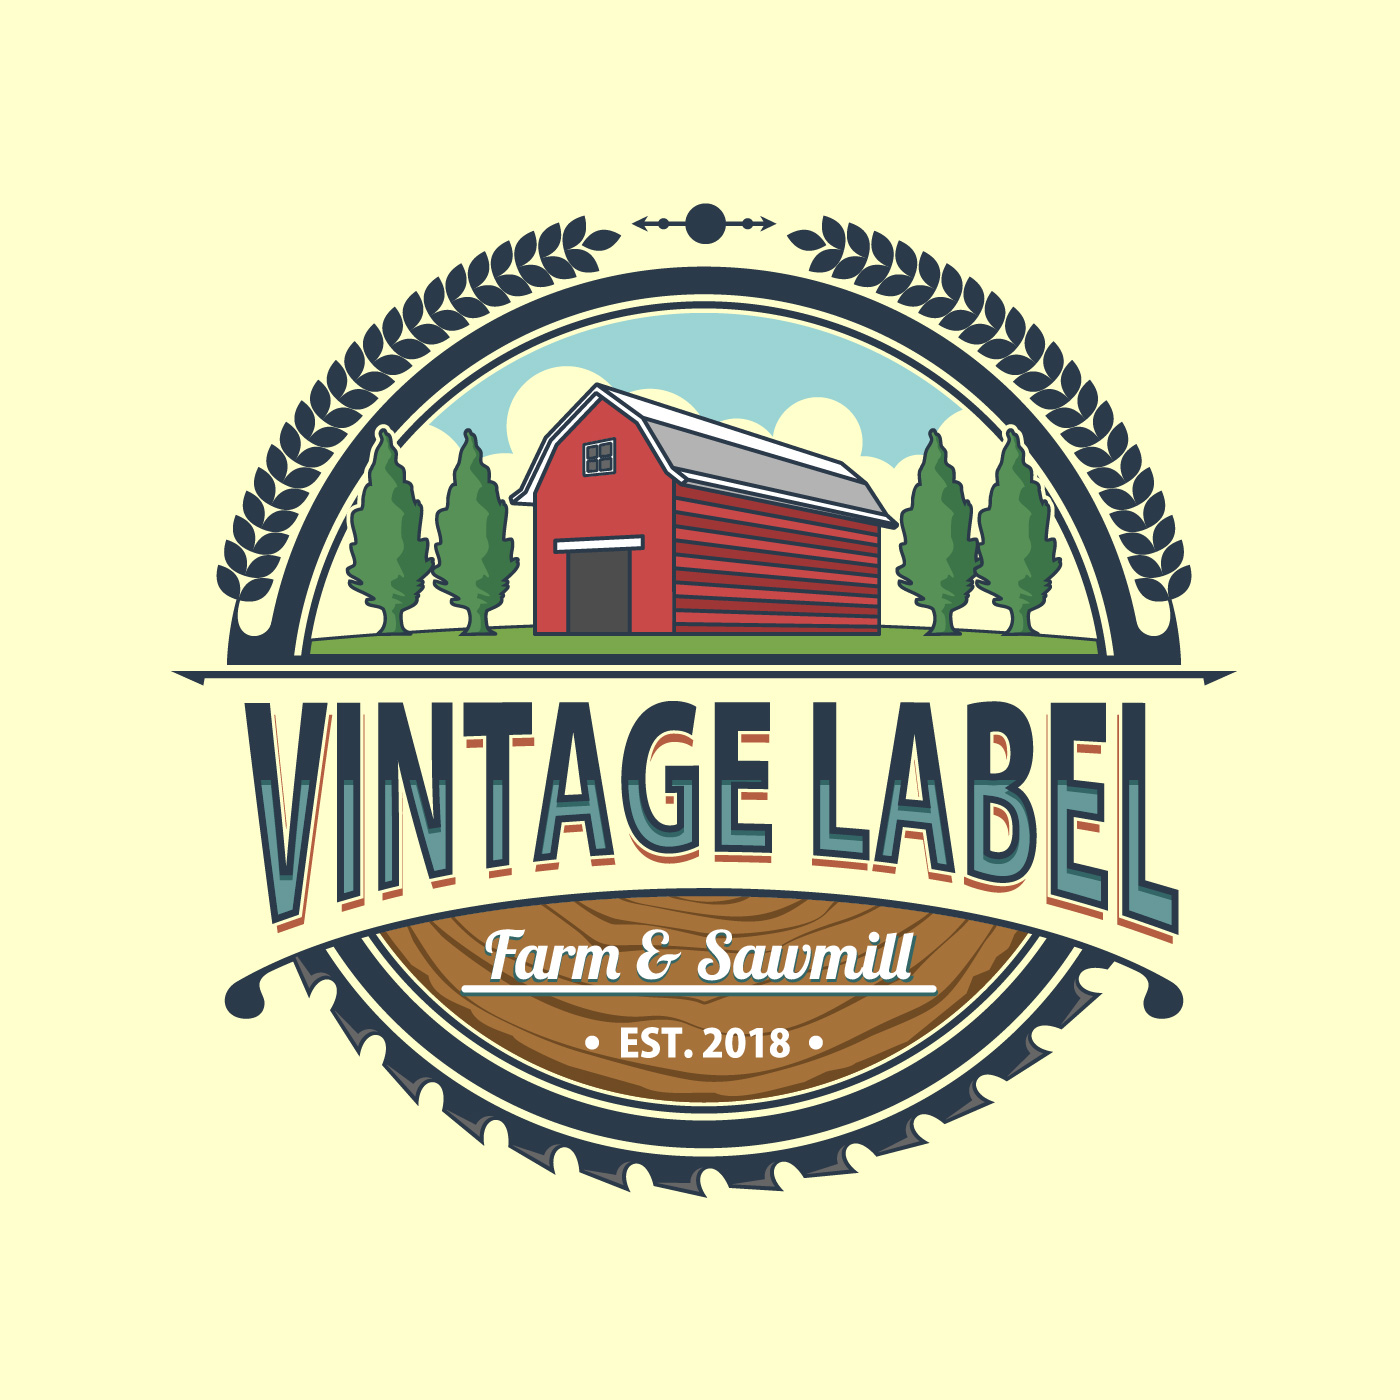 Premium Quality Badge And Banner Collection Vectors: Vintage Farm And Sawmill Label Vector